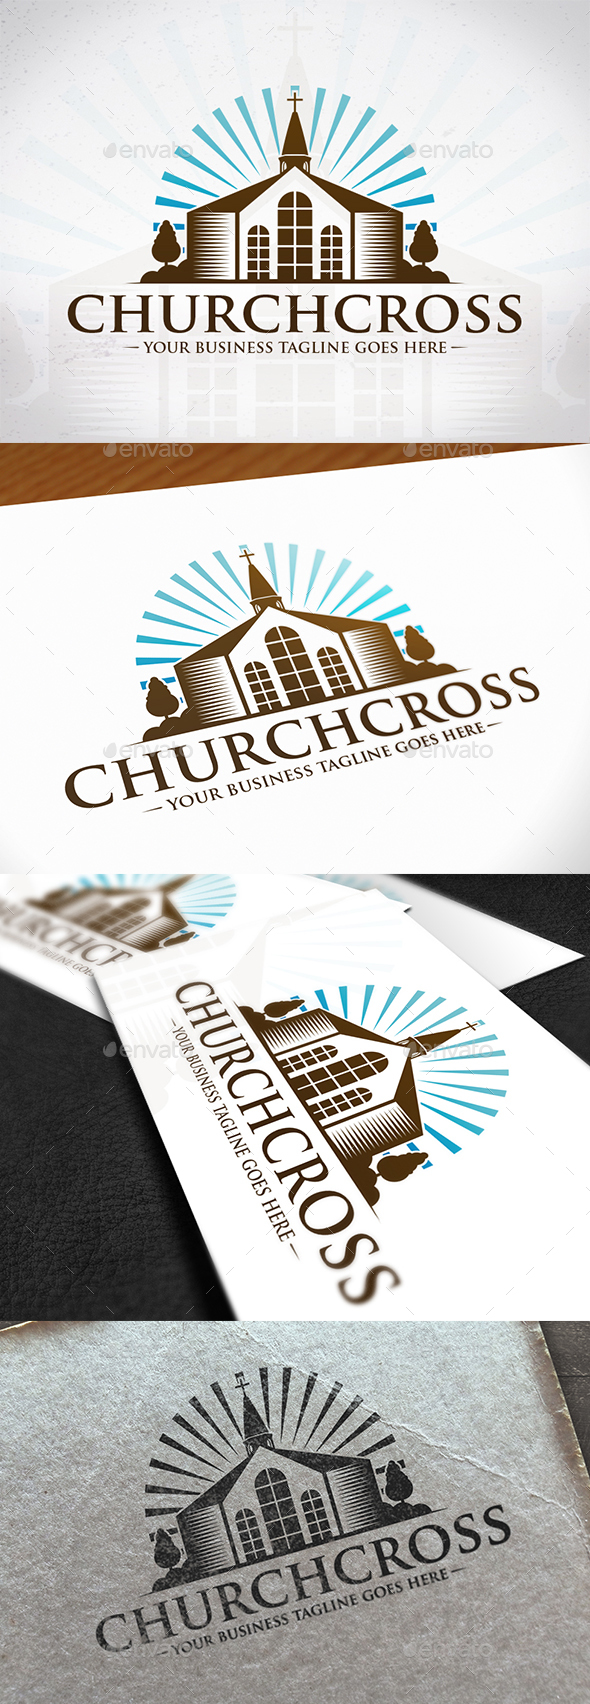 Cross Church Creative Logo - Buildings Logo Templates